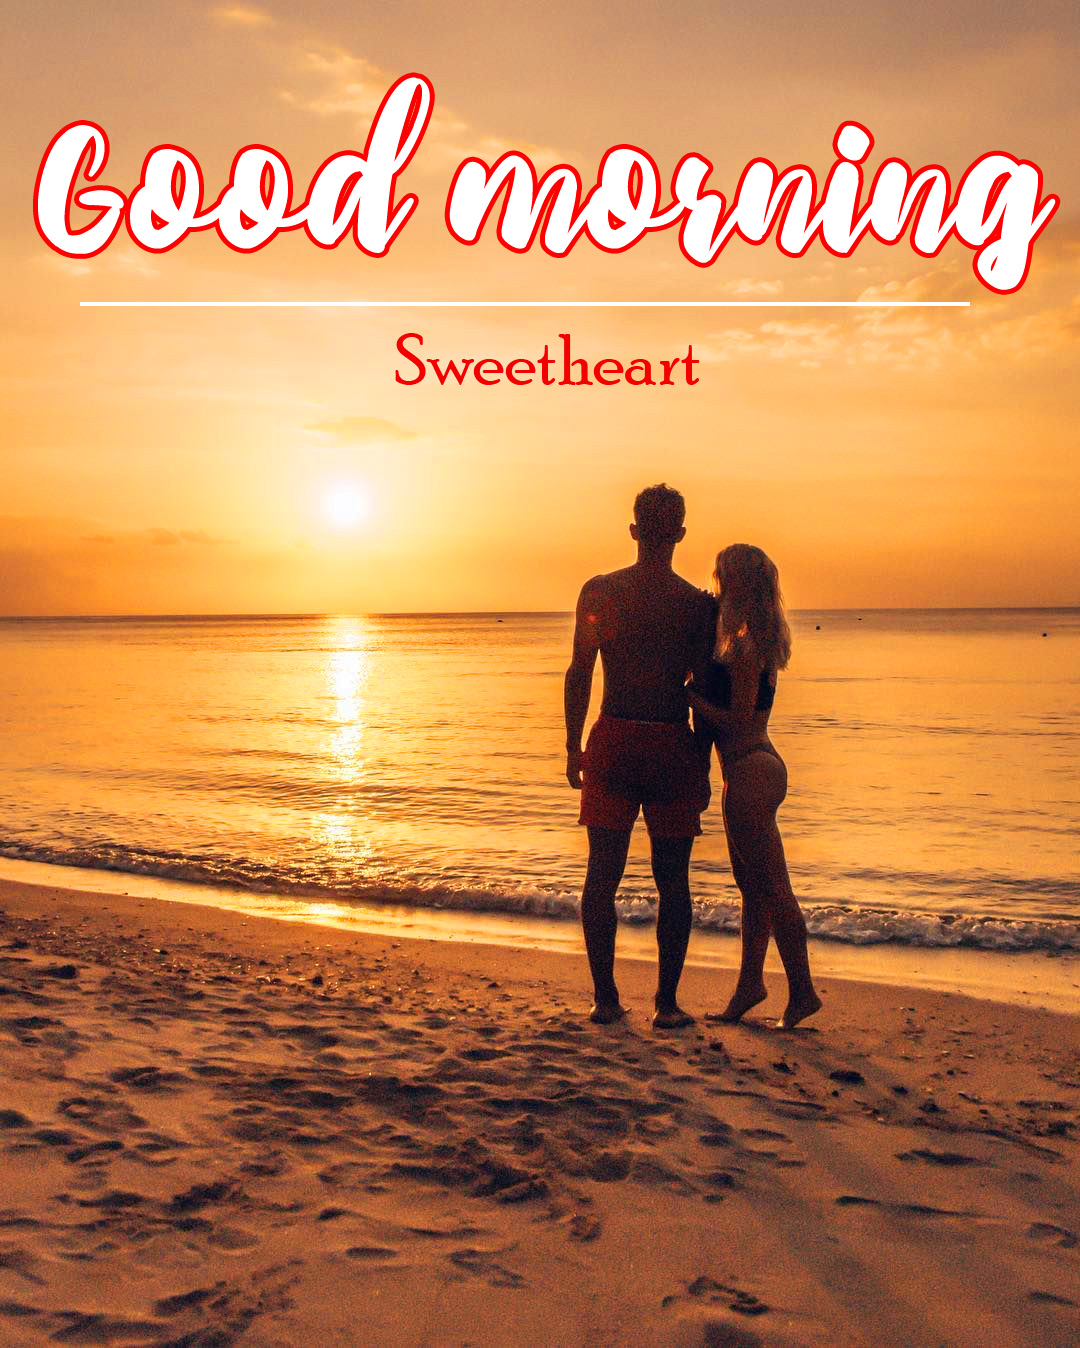 Love Couple Good Morning Images 5